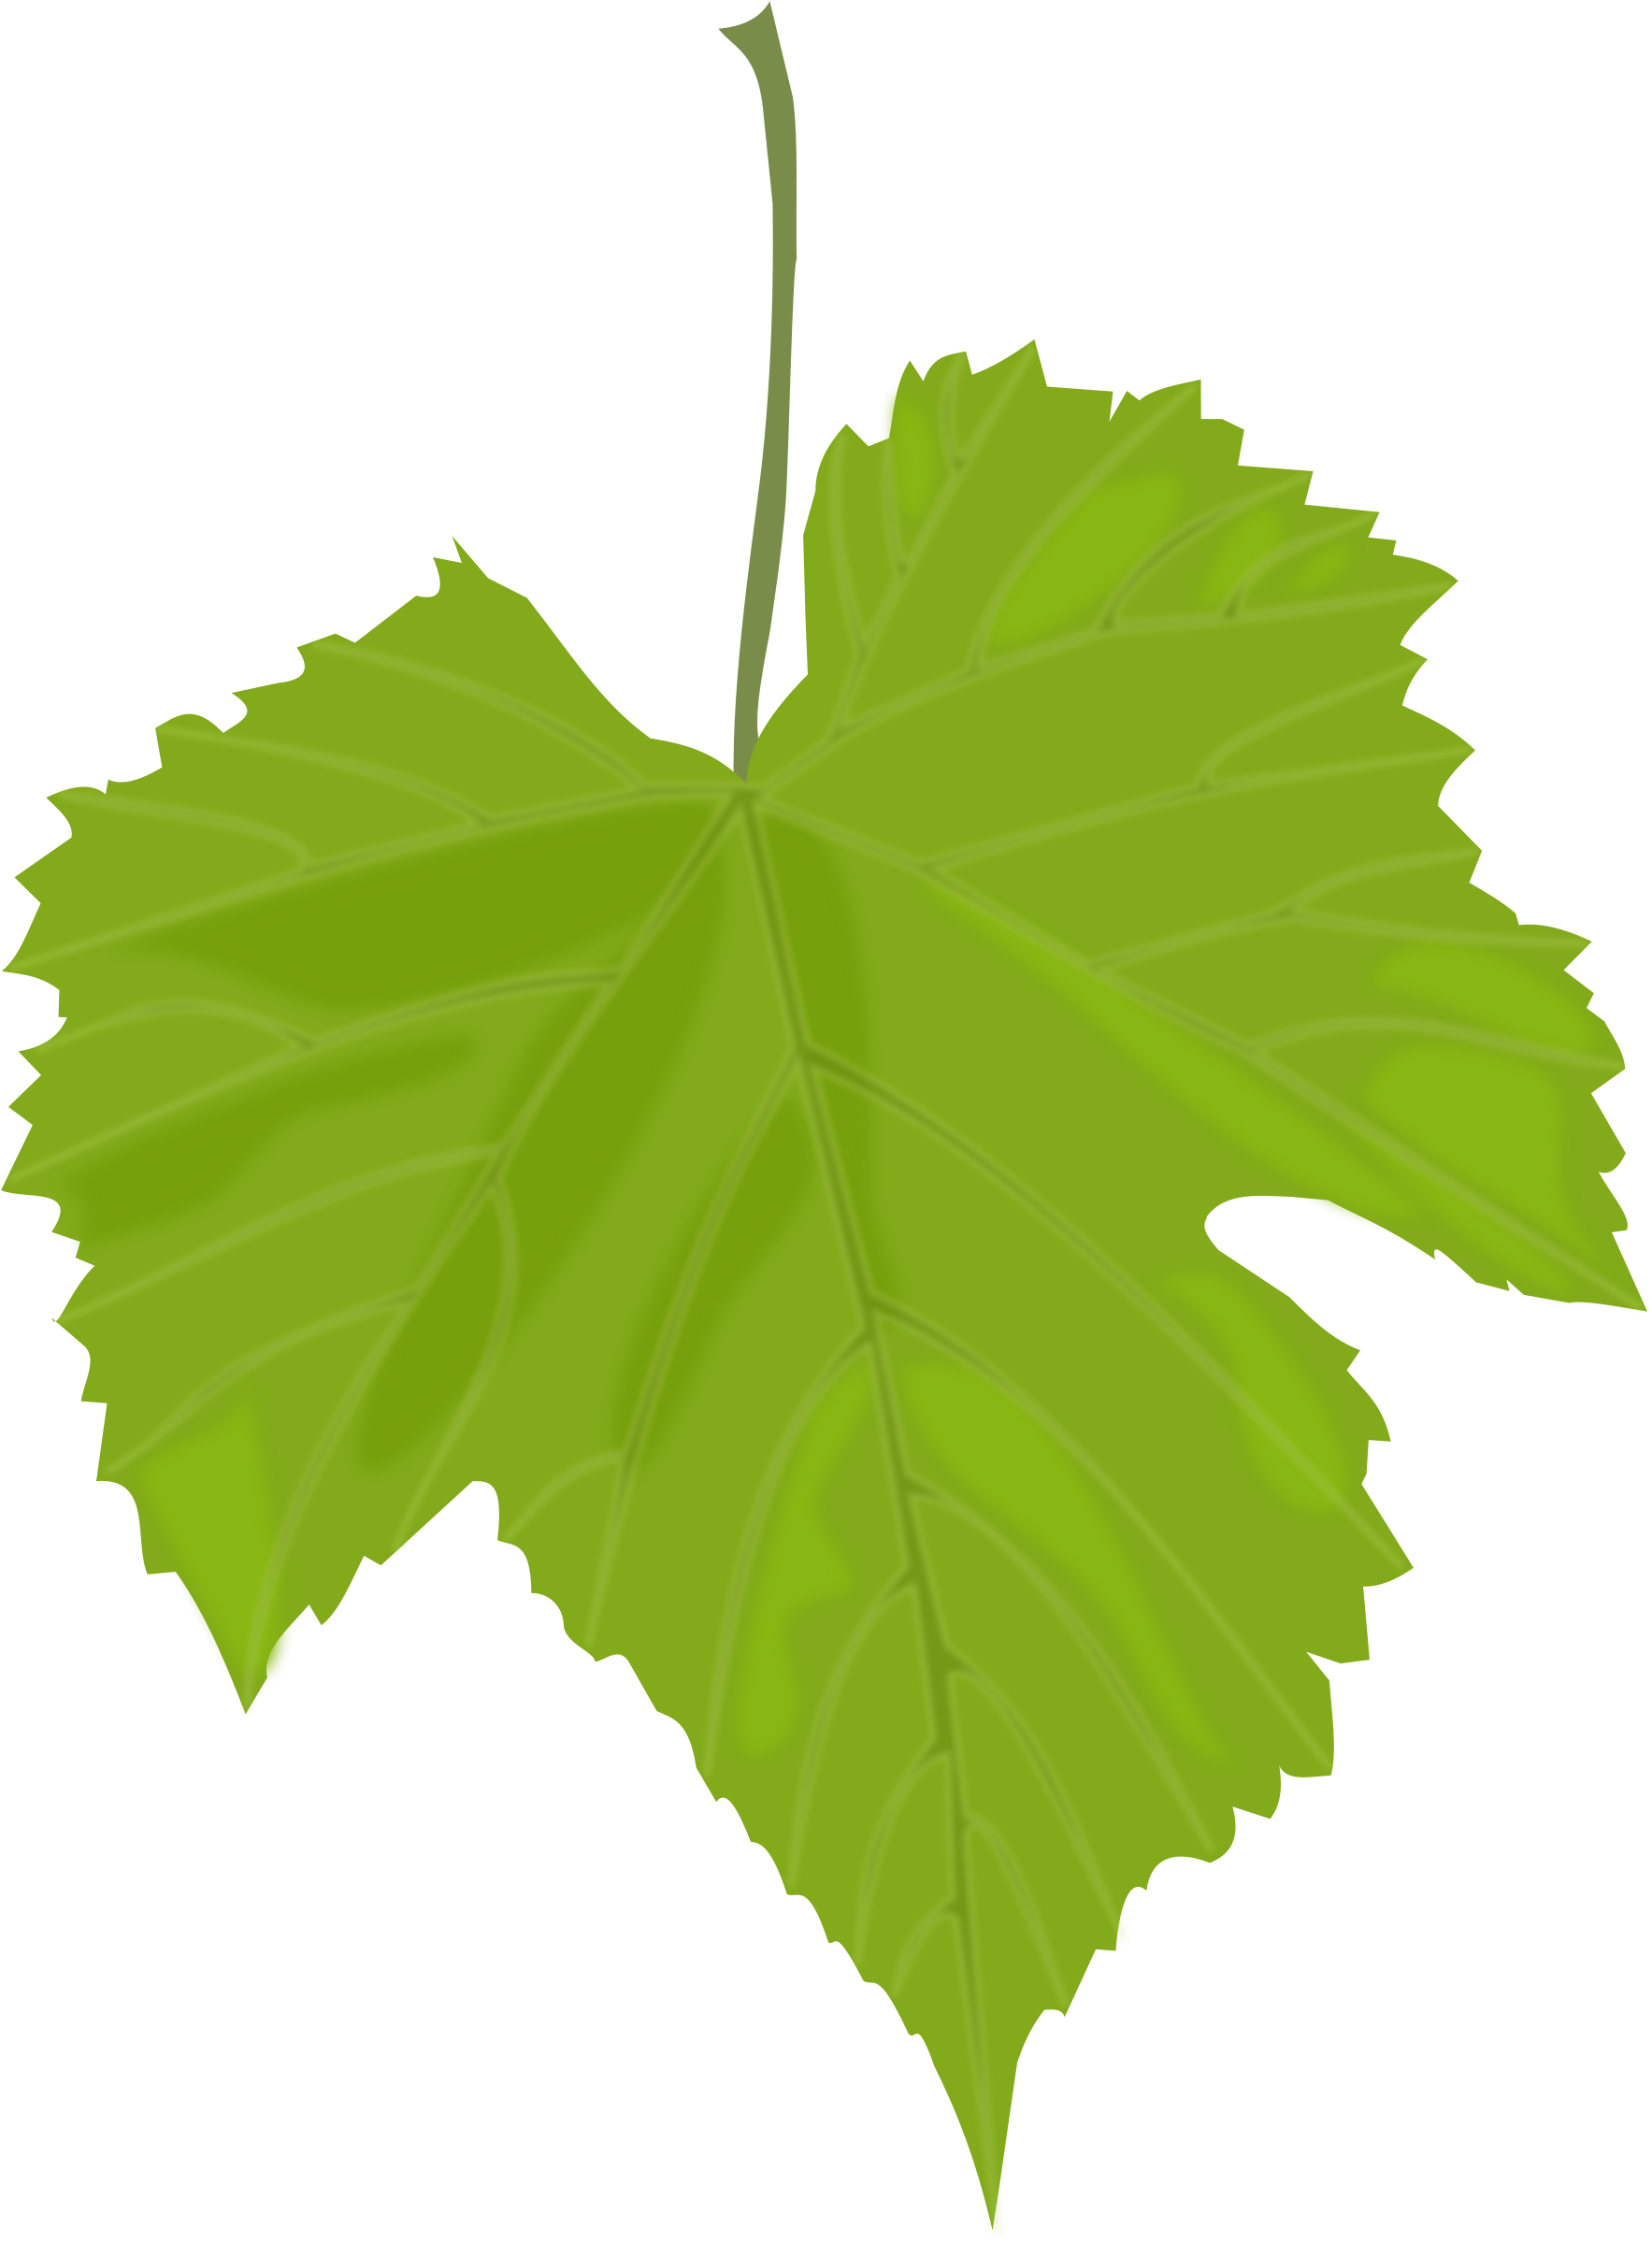 Green leaves png. Image purepng free transparent